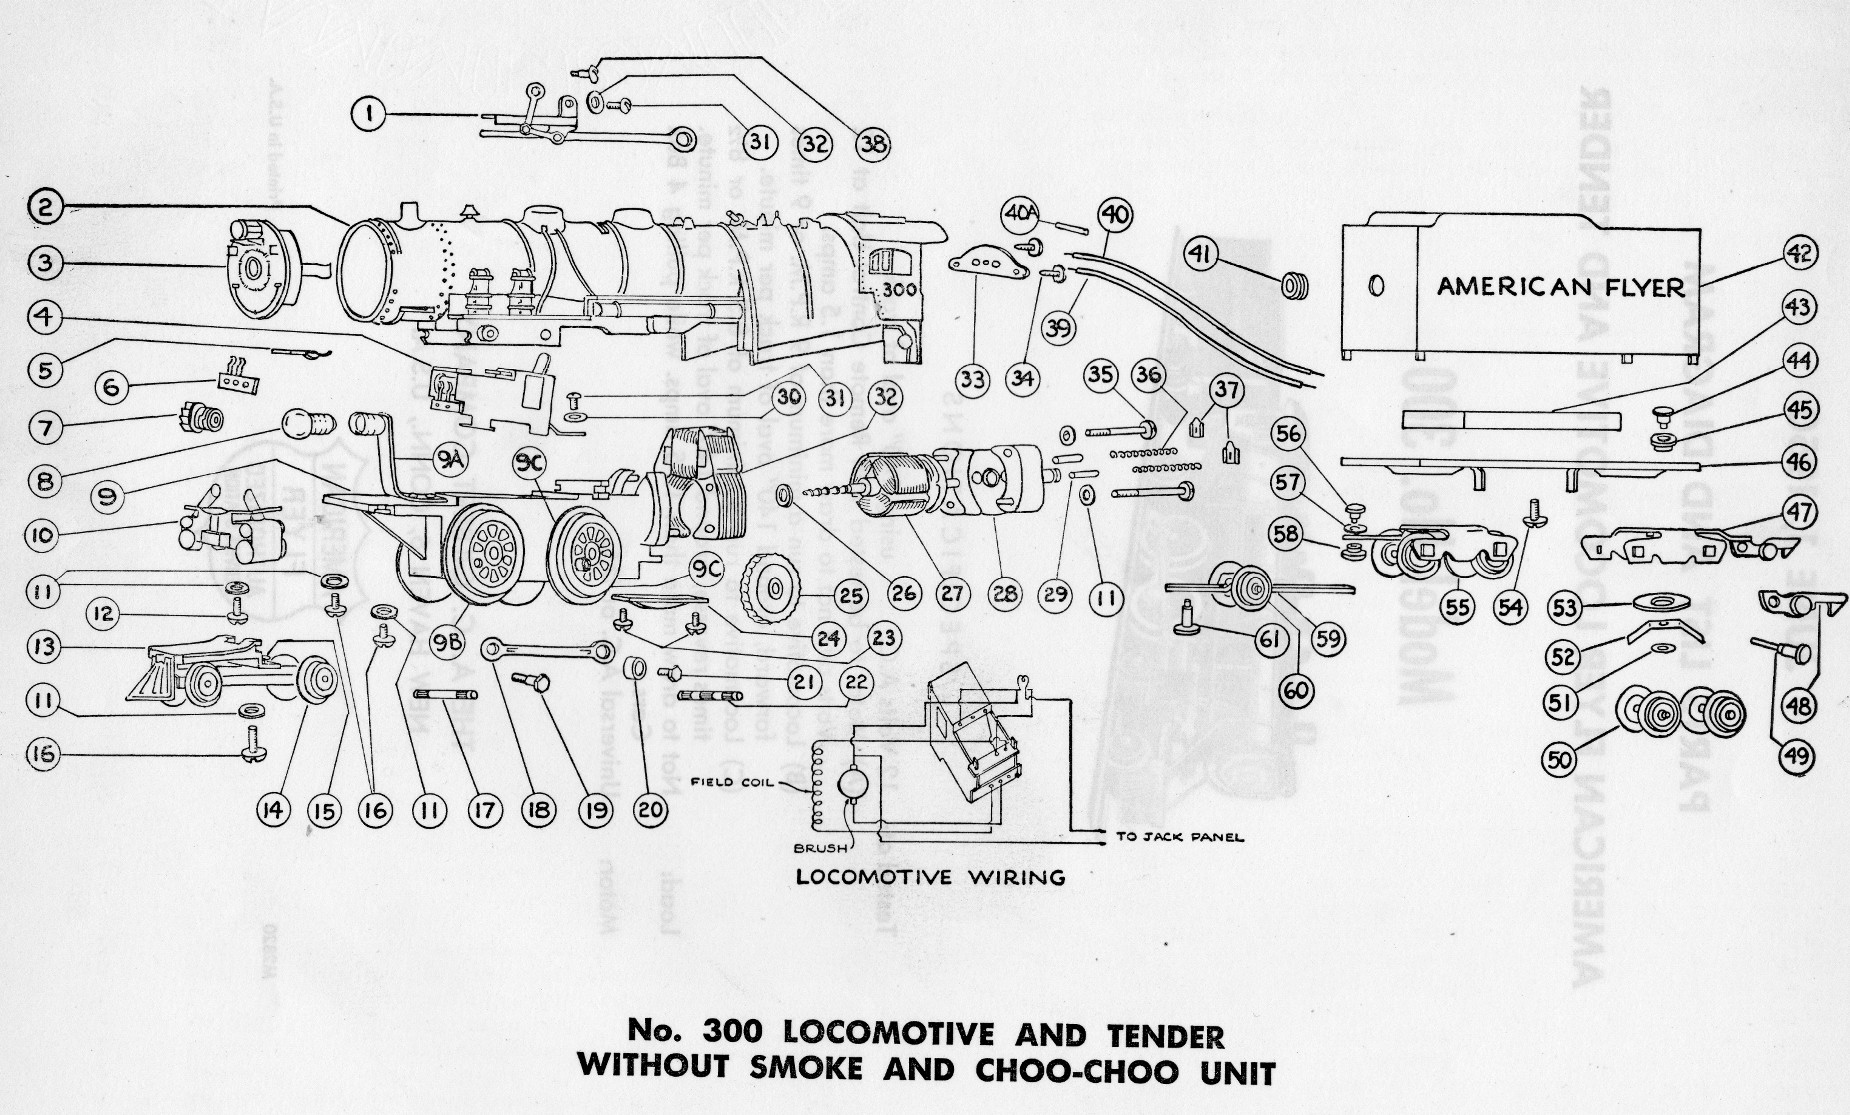 American Flyer Locomotive 300 Parts List Amp Diagram